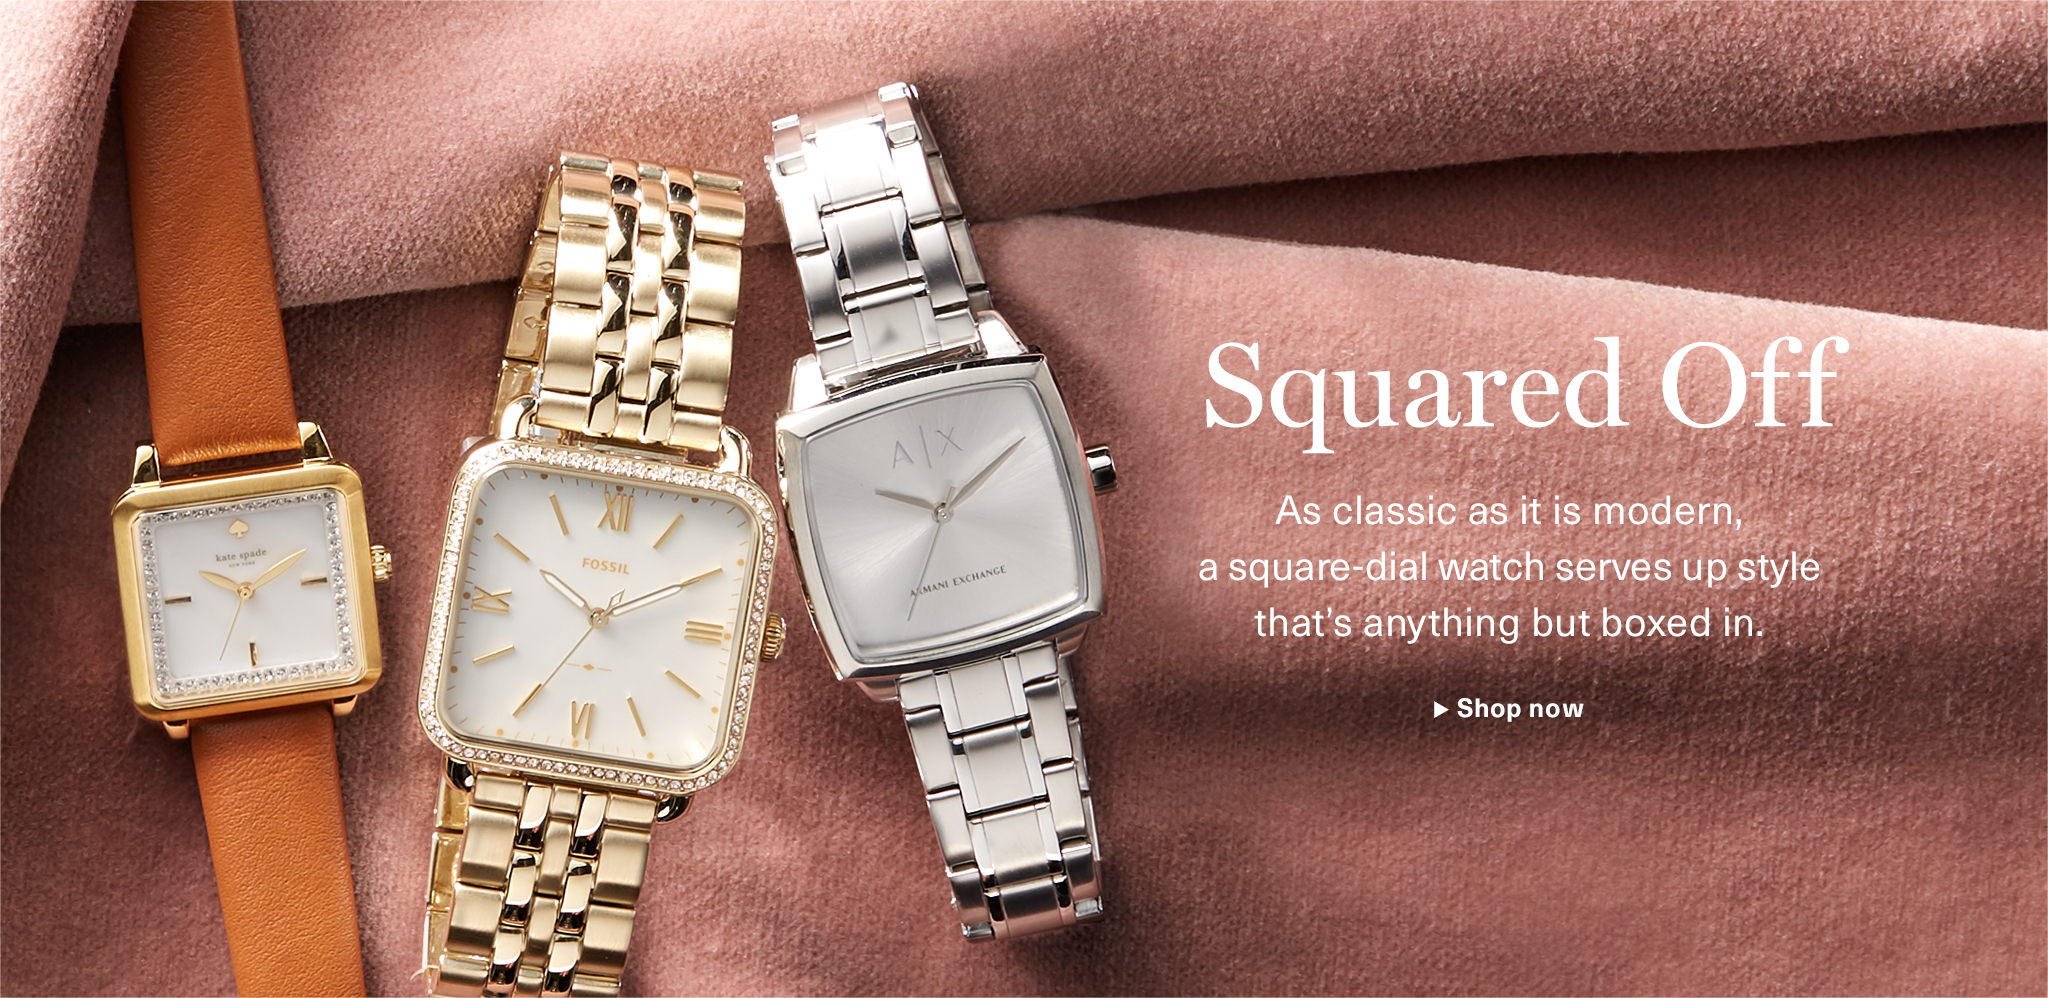 Squared Off: As classic as it is modern, a square-dial watch serves up style that's anything but boxed in.